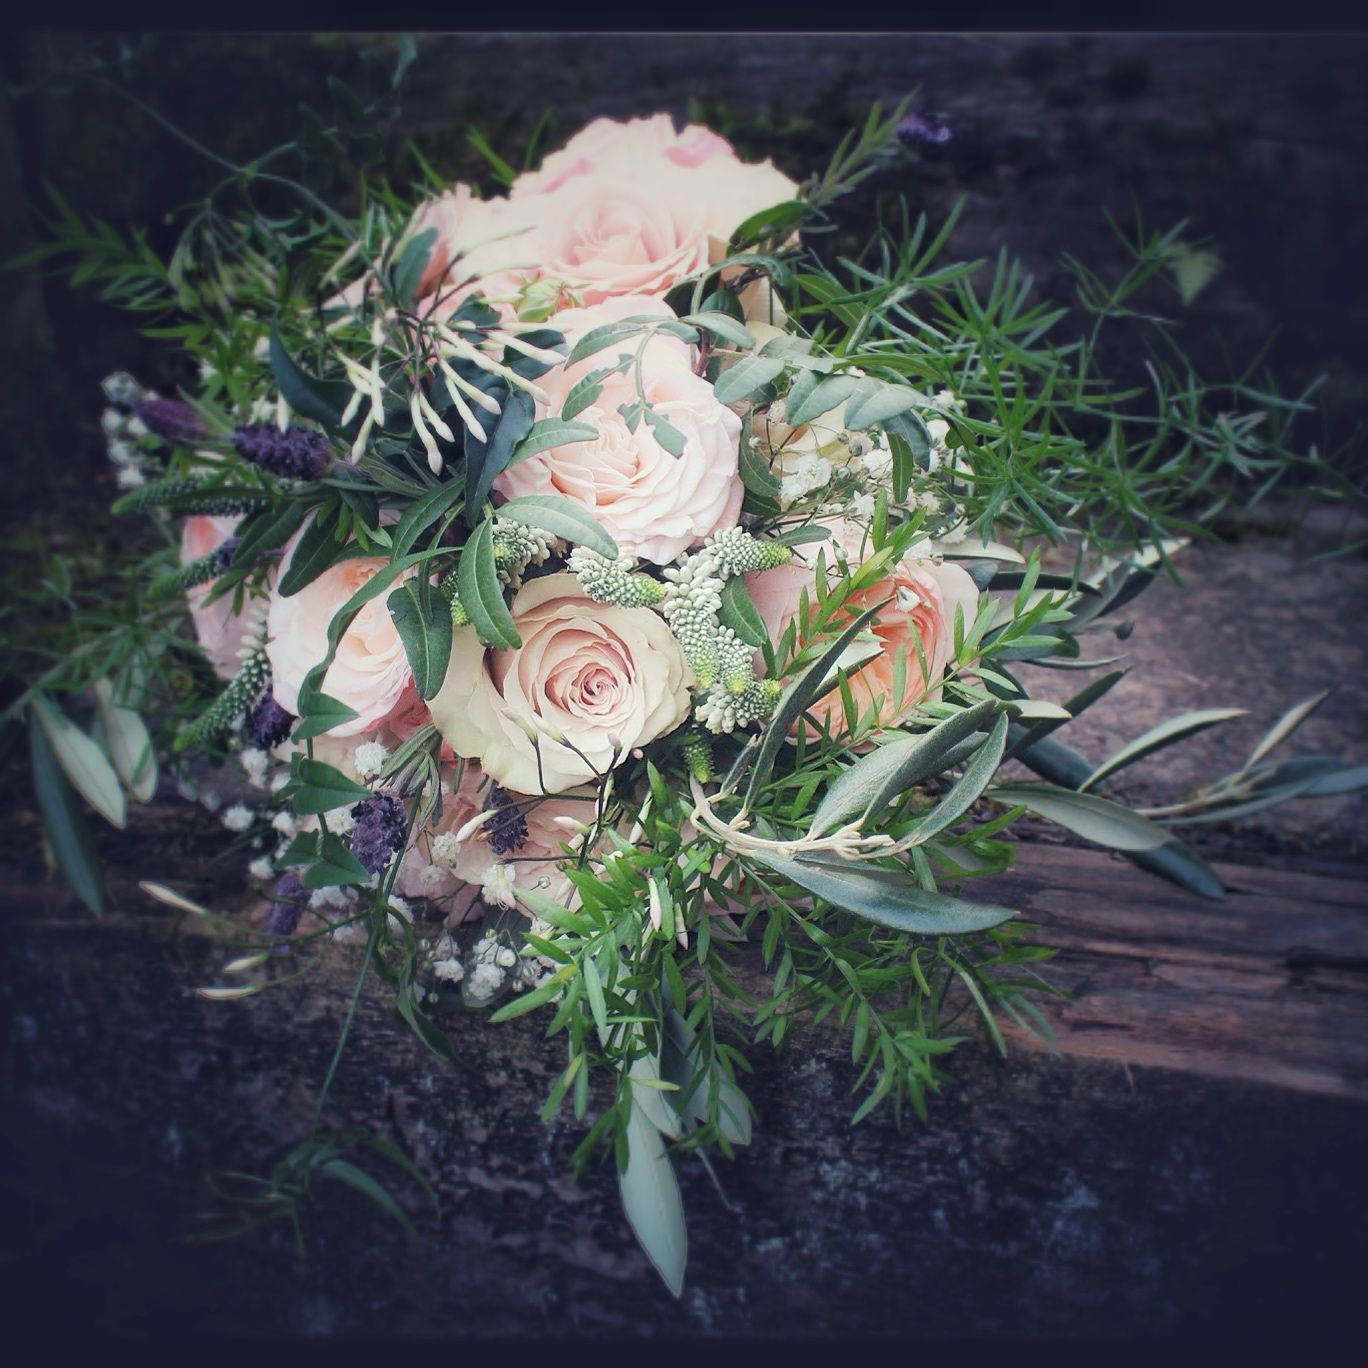 Flowers by shirley garden rose bouquets - Peach And Lavender Gathered Bouquet With Juliet Roses Quicksand Roses Lavender Veronica And